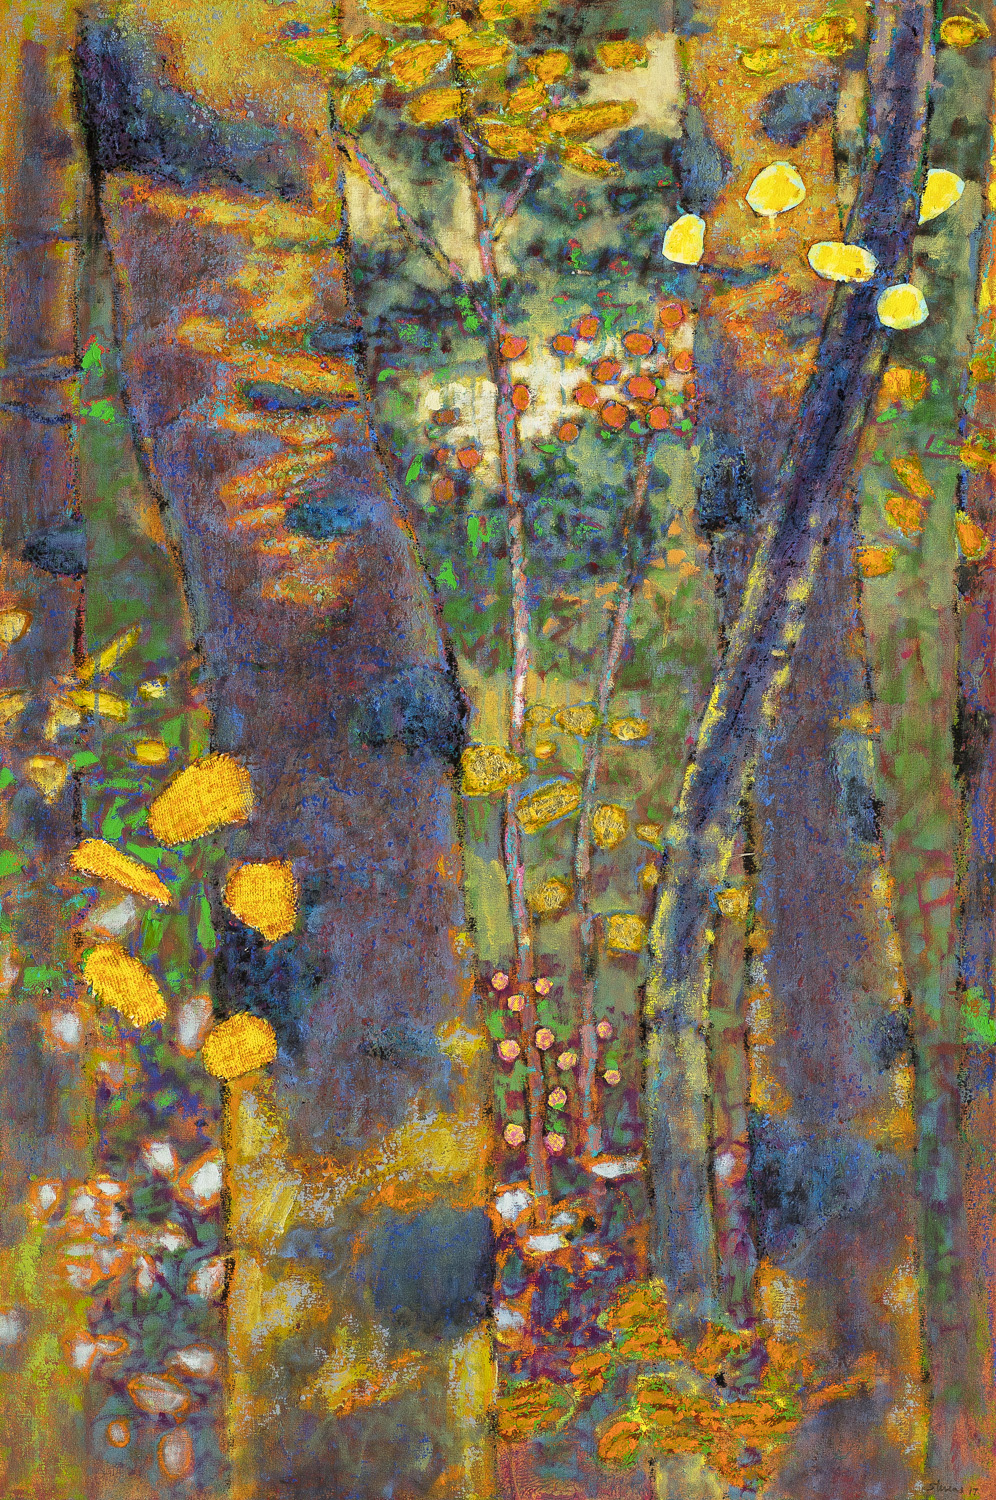 Reach Out and Touch It  | oil on canvas | 48 x 32"